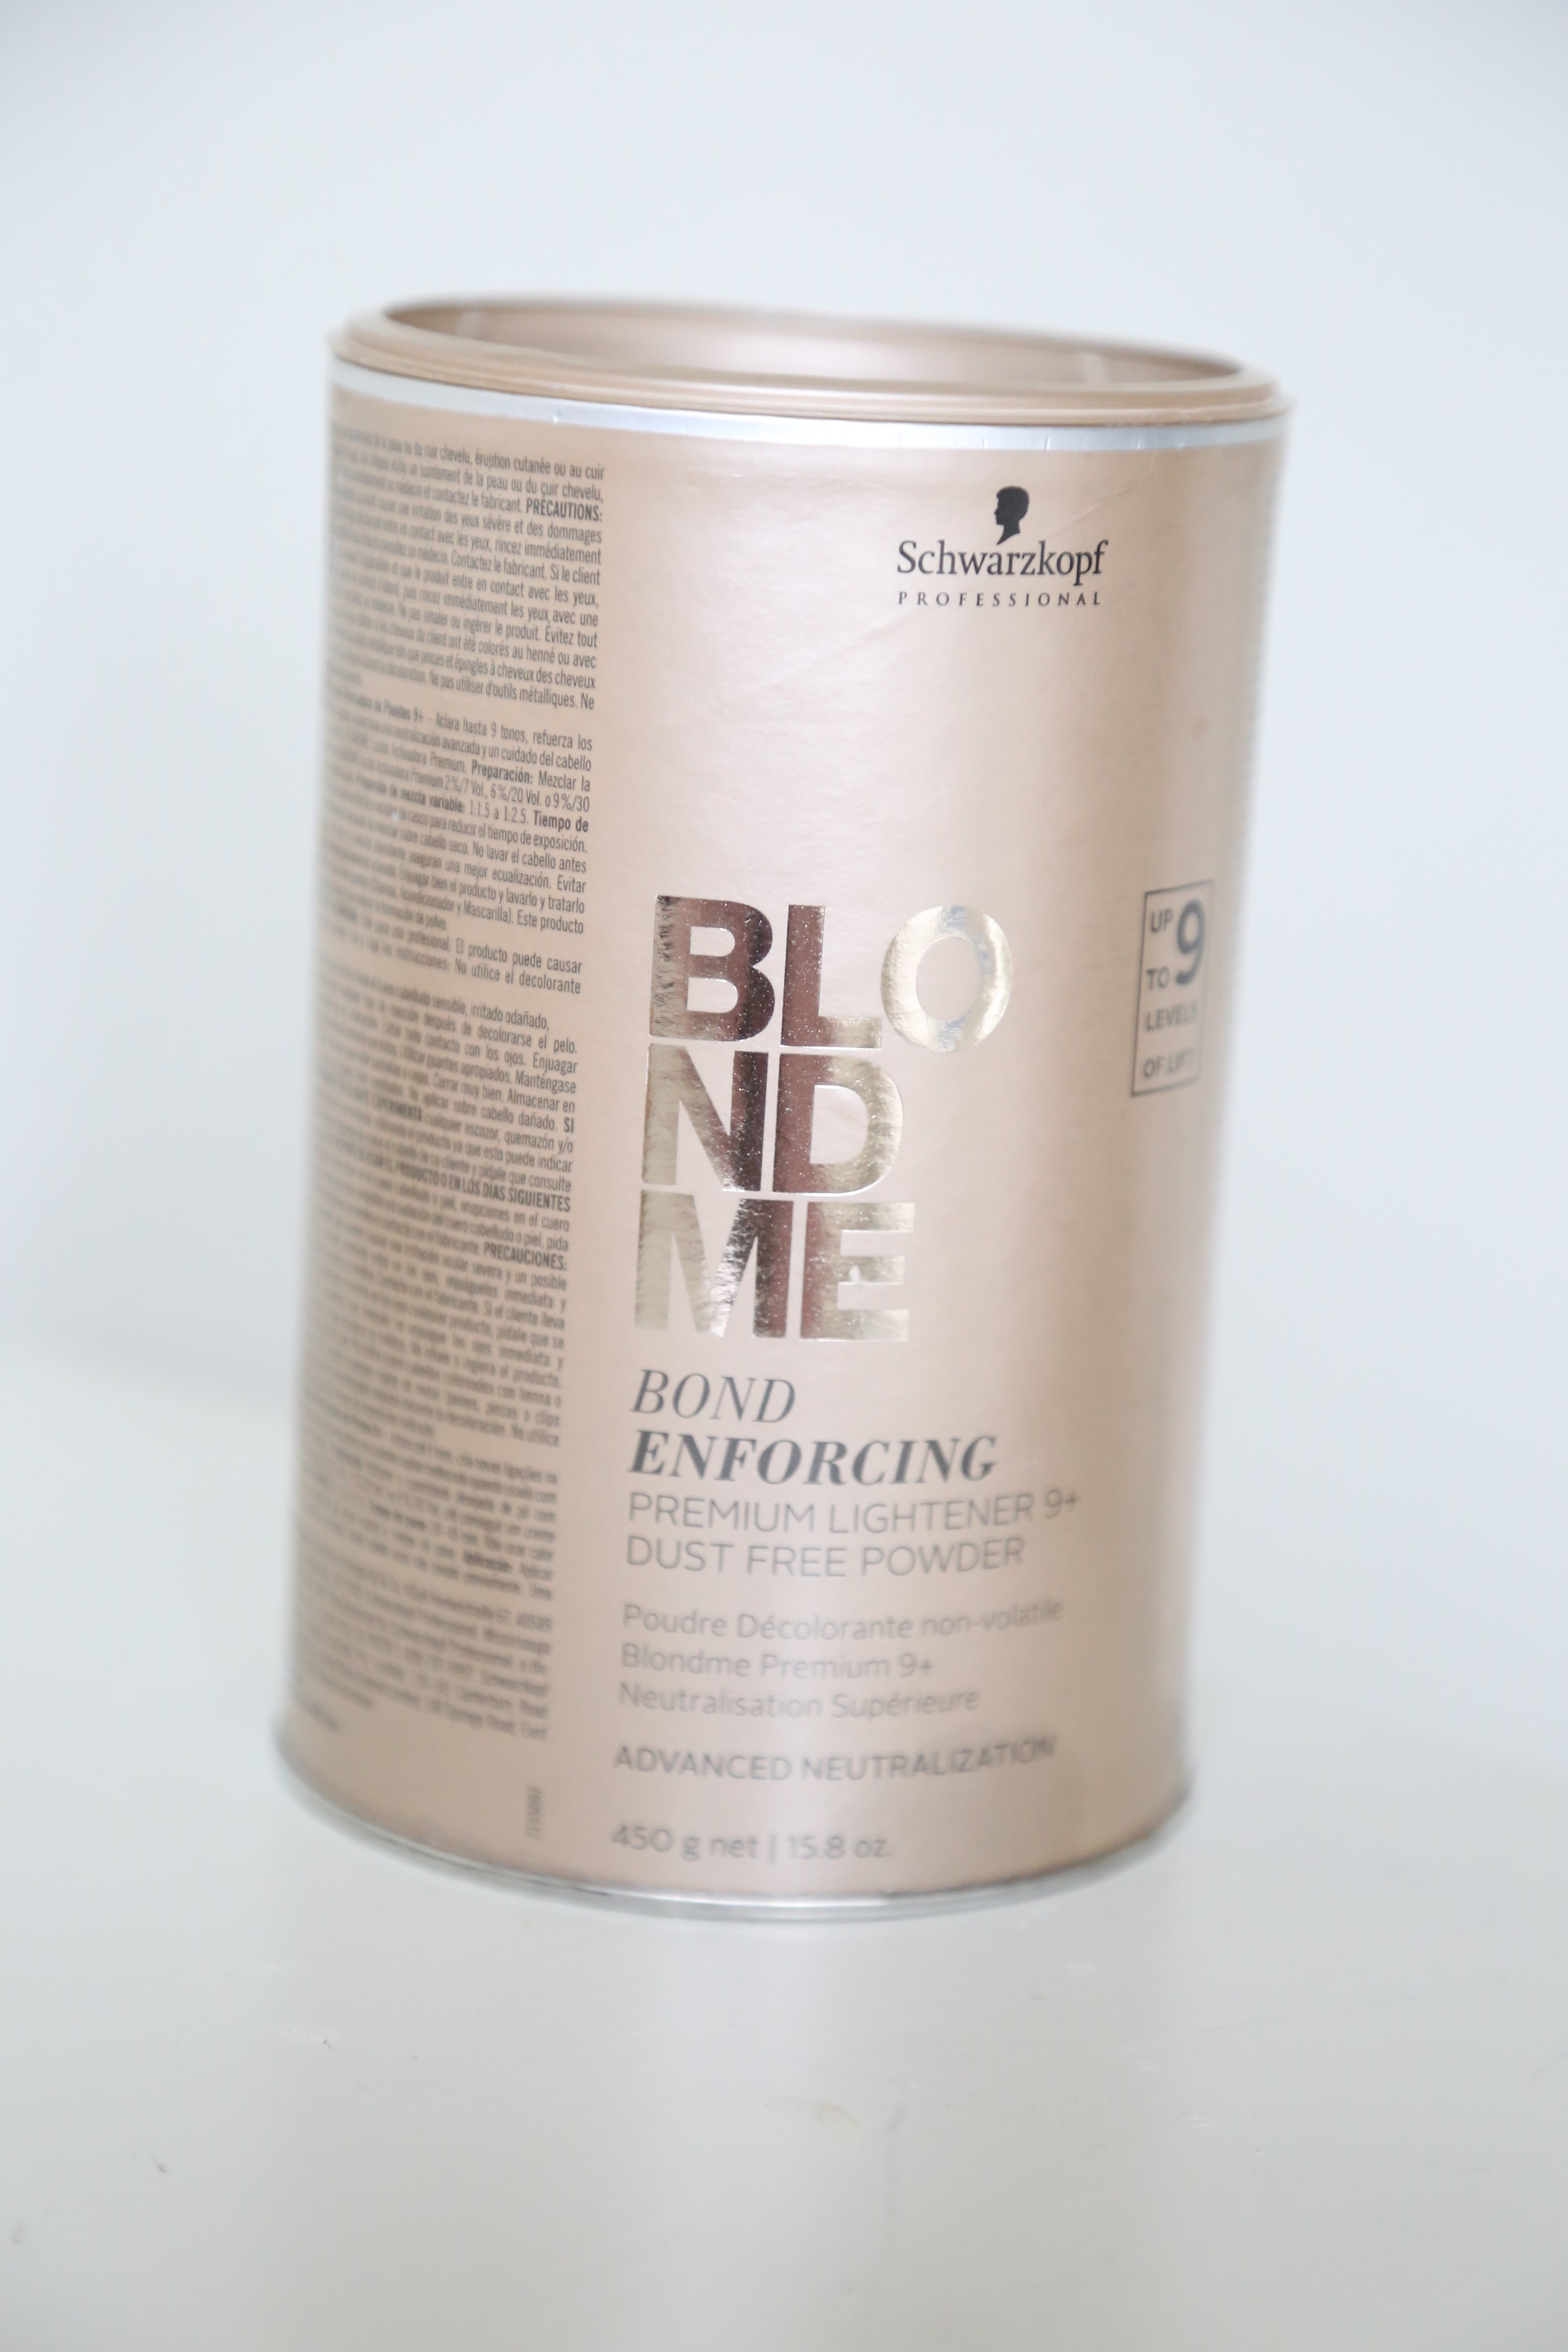 STEP 1: Bleach - Really good bleach is important.   I have used Wella and Redken but this one is my favorite.   It has bonding technology so no need for any additives. It lifts quickly and keeps the hair in good shape.